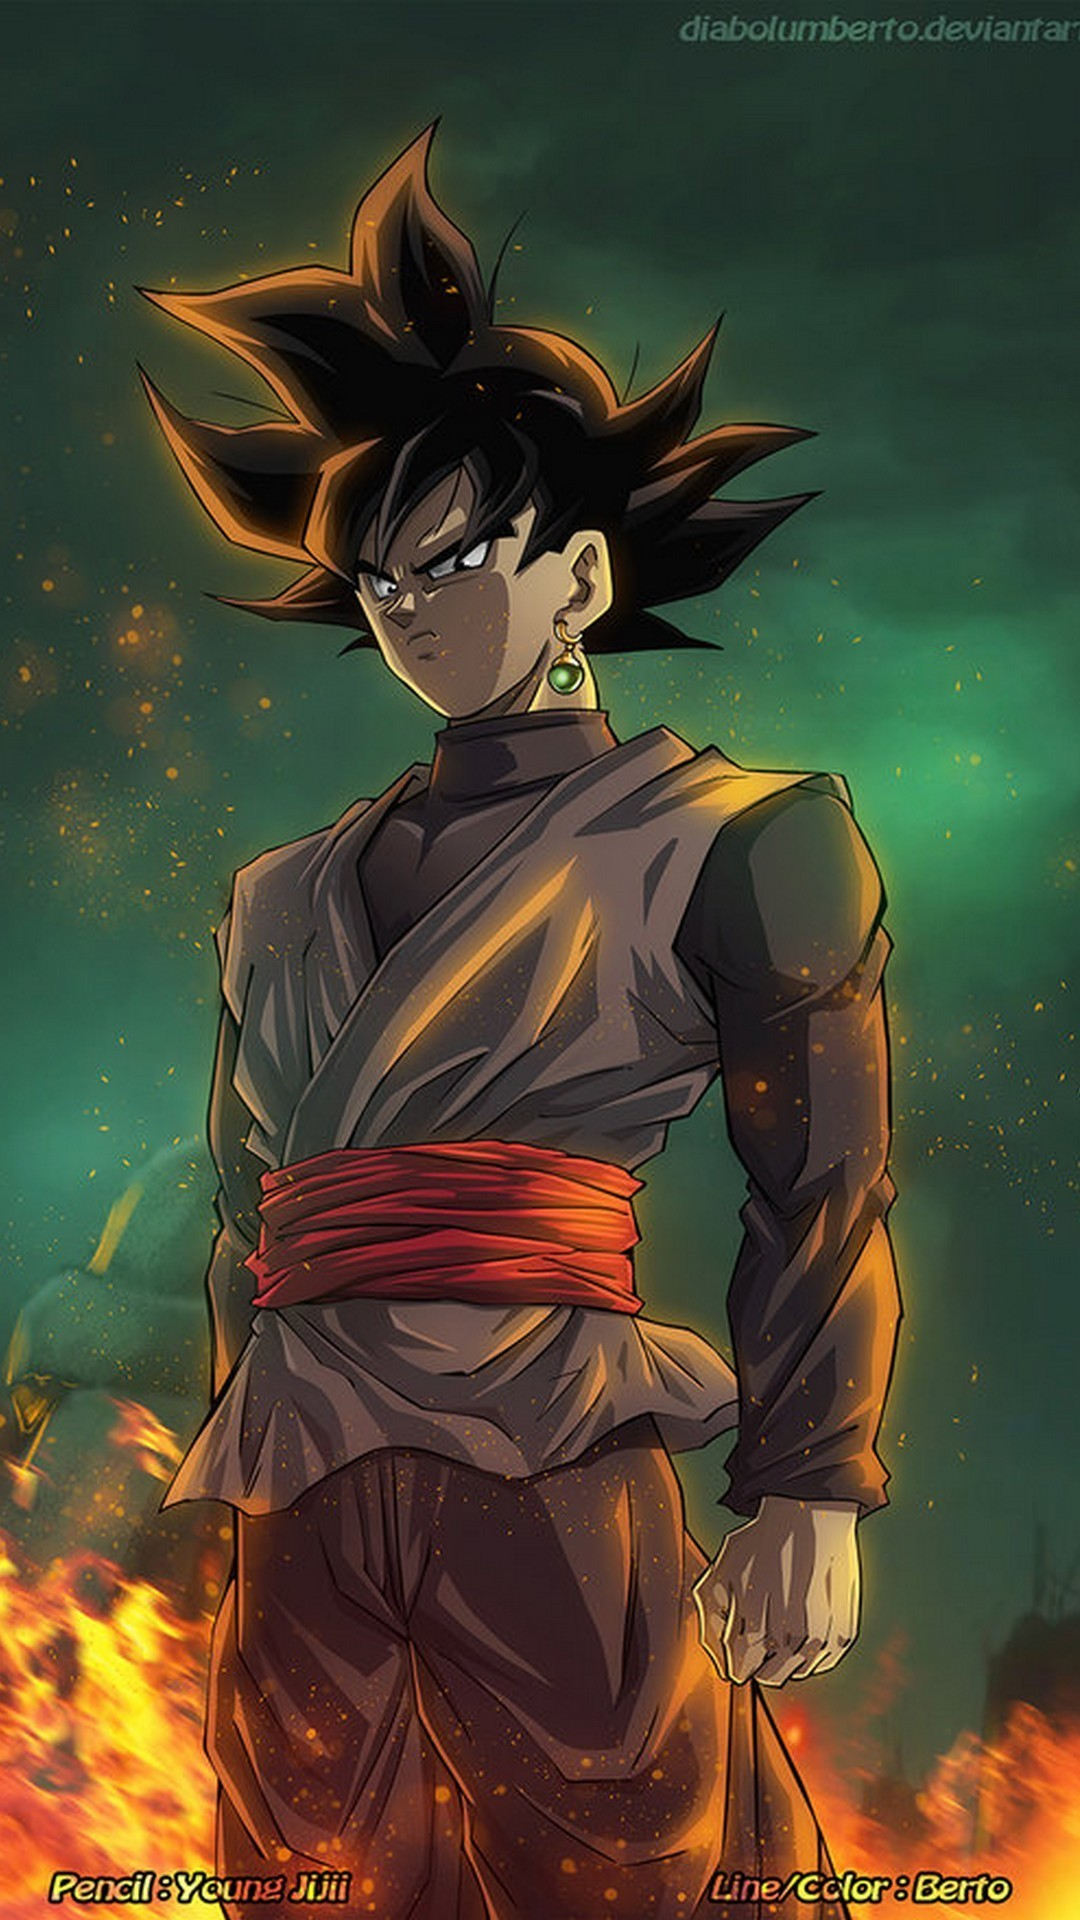 Wallpaper Android Black Goku With Hd Resolution Goku Black Wallpaper Phone 1080x1920 Wallpaper Teahub Io